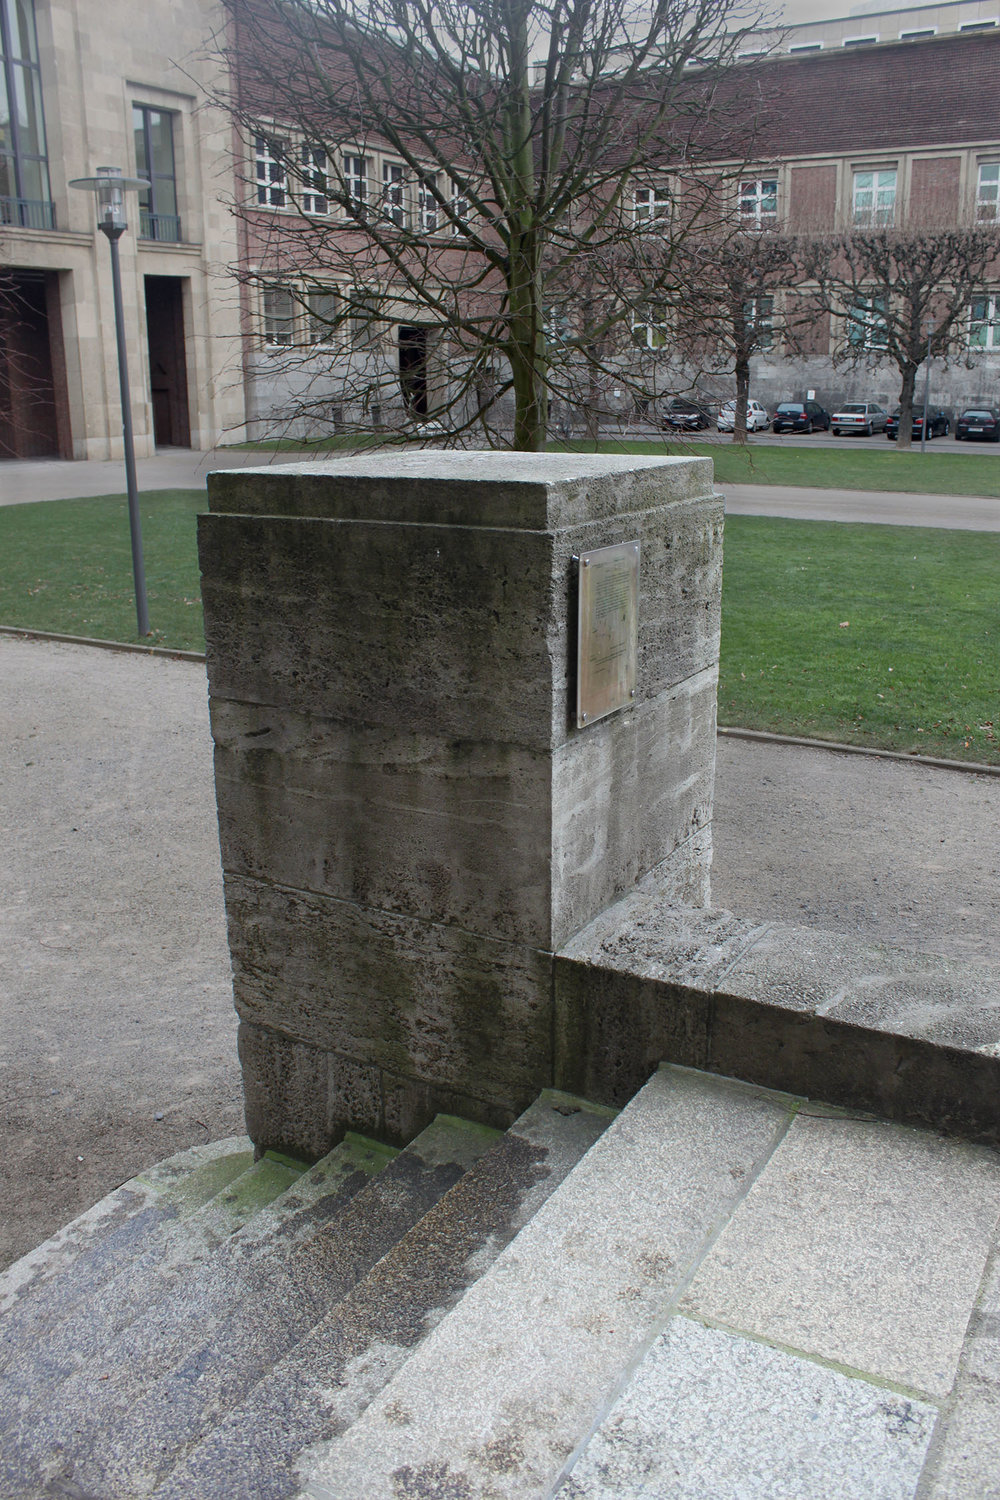 The empty pedestal outsid the Kuns Palast,  Düsseldorf , Germany, February 2012. hoto by Nomi Mishkin